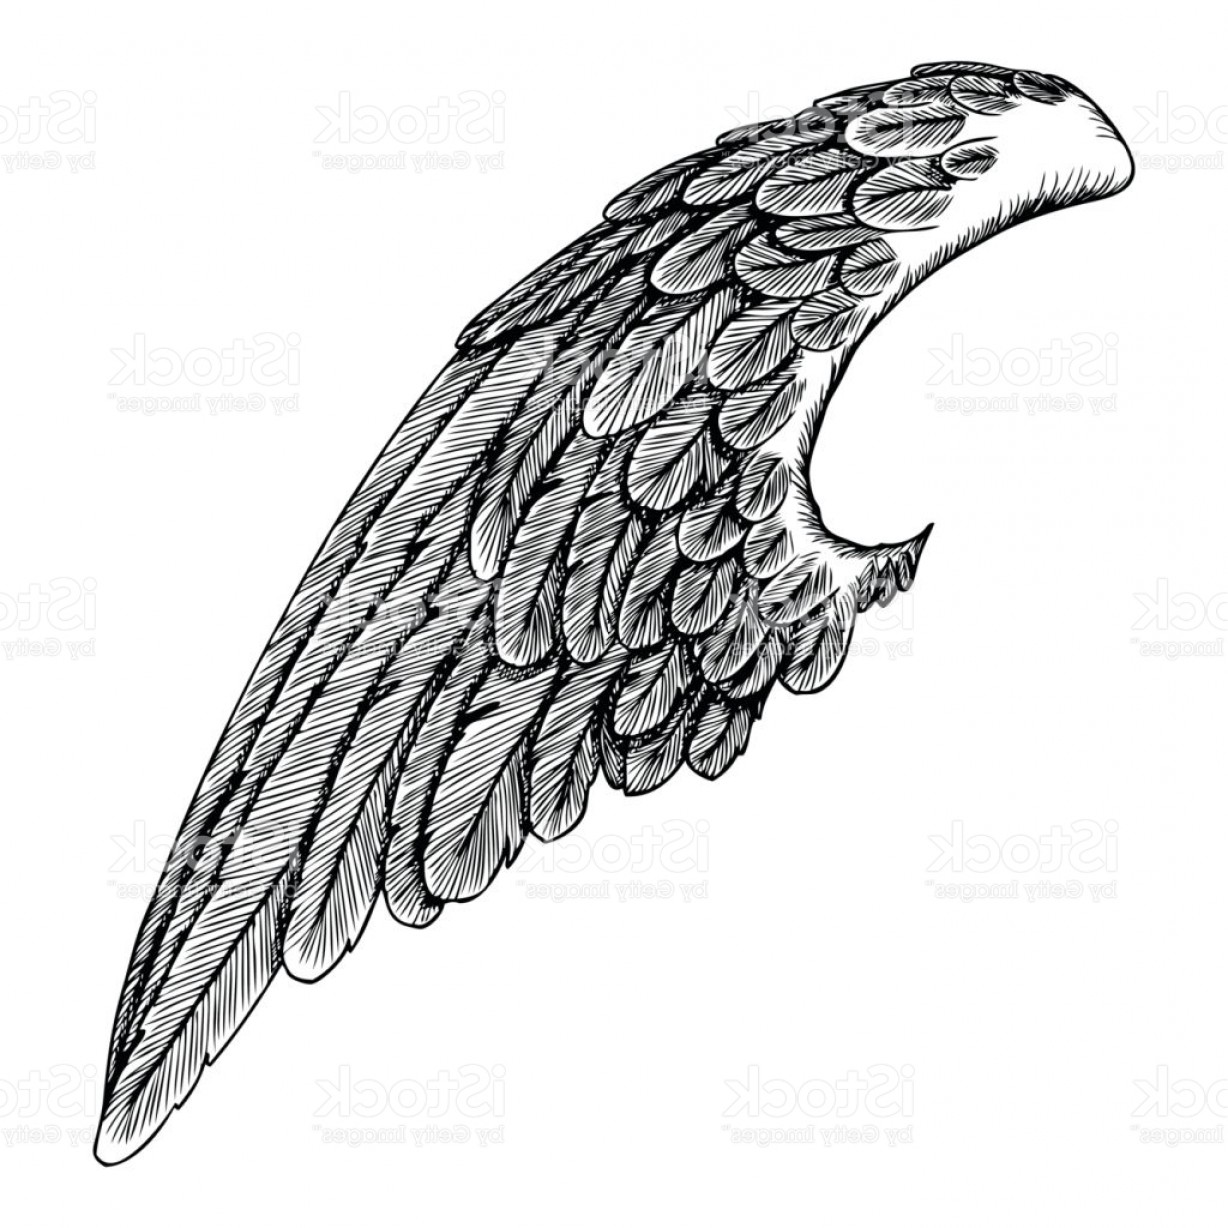 Falcon Wing Vector Art: Angel Wing Illustration On White Background Body Tattoo Concept Art Gm